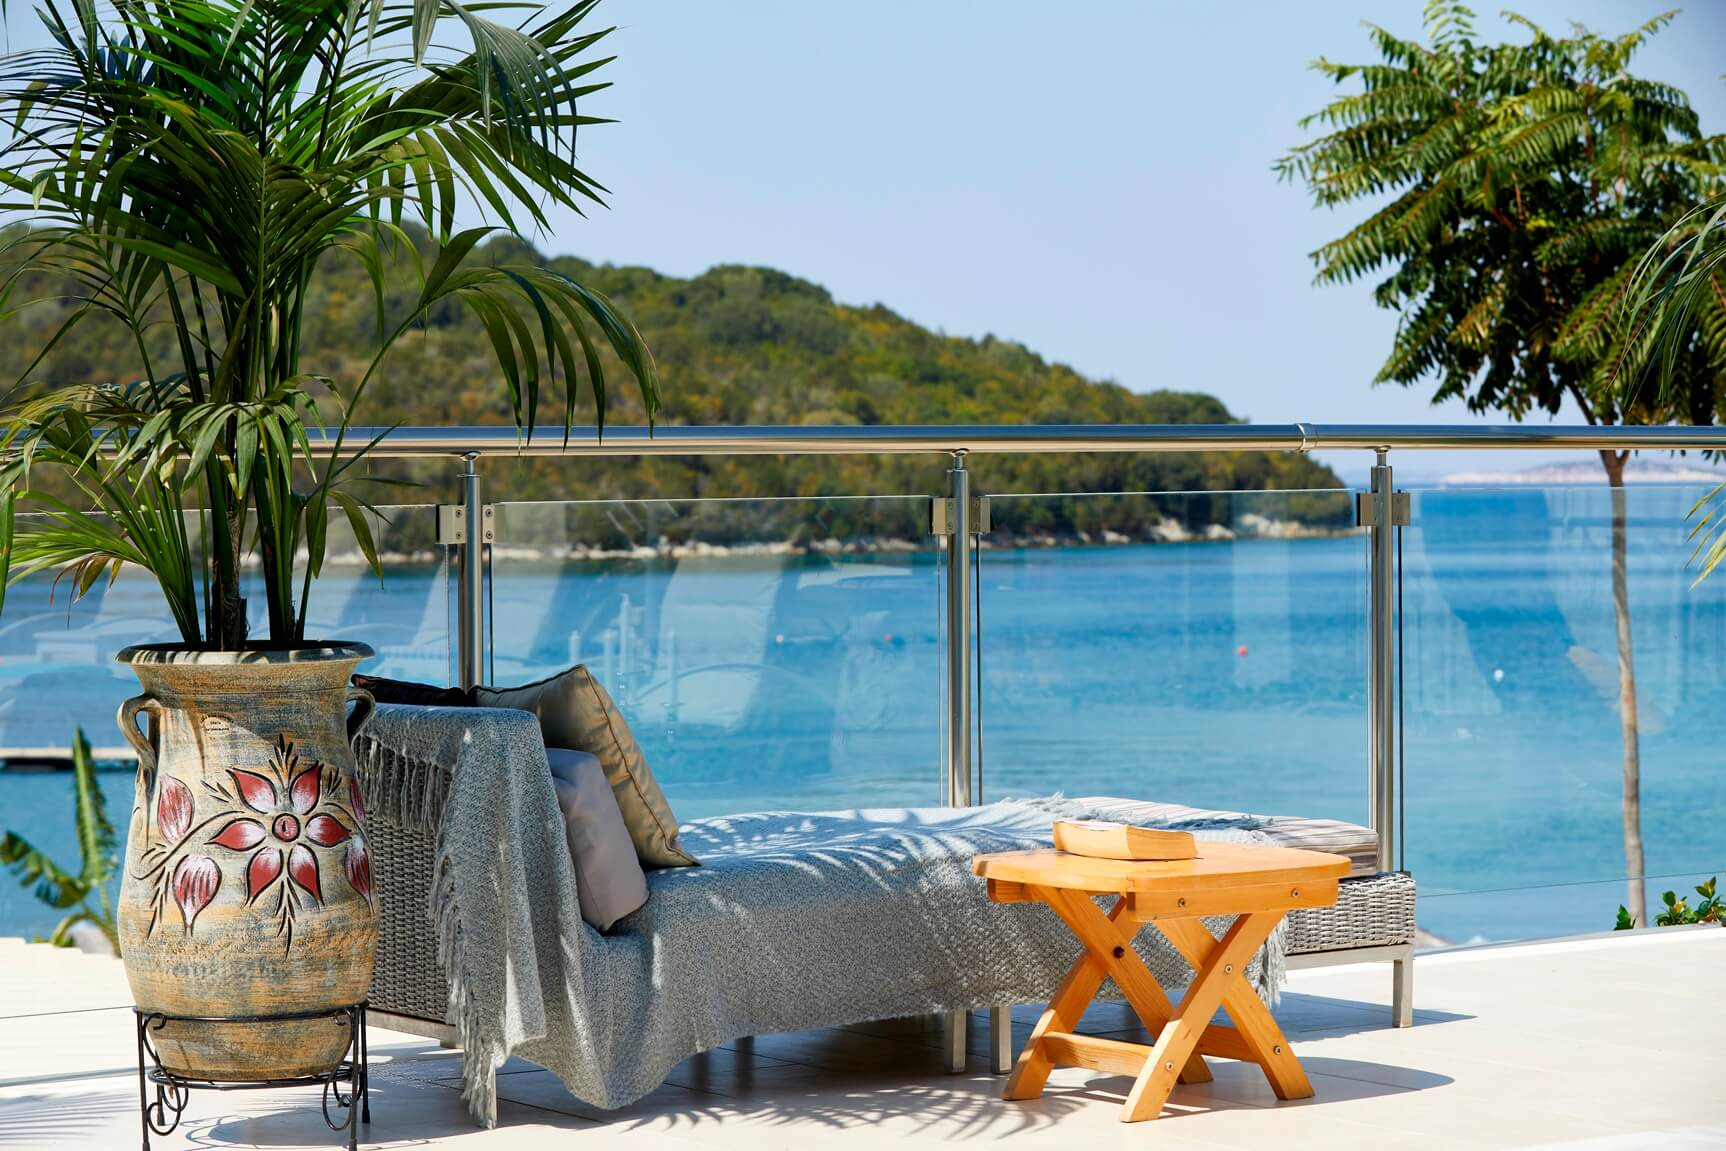 Karvouno-Villas-sivota-luxury-villas-private-kentriki-5